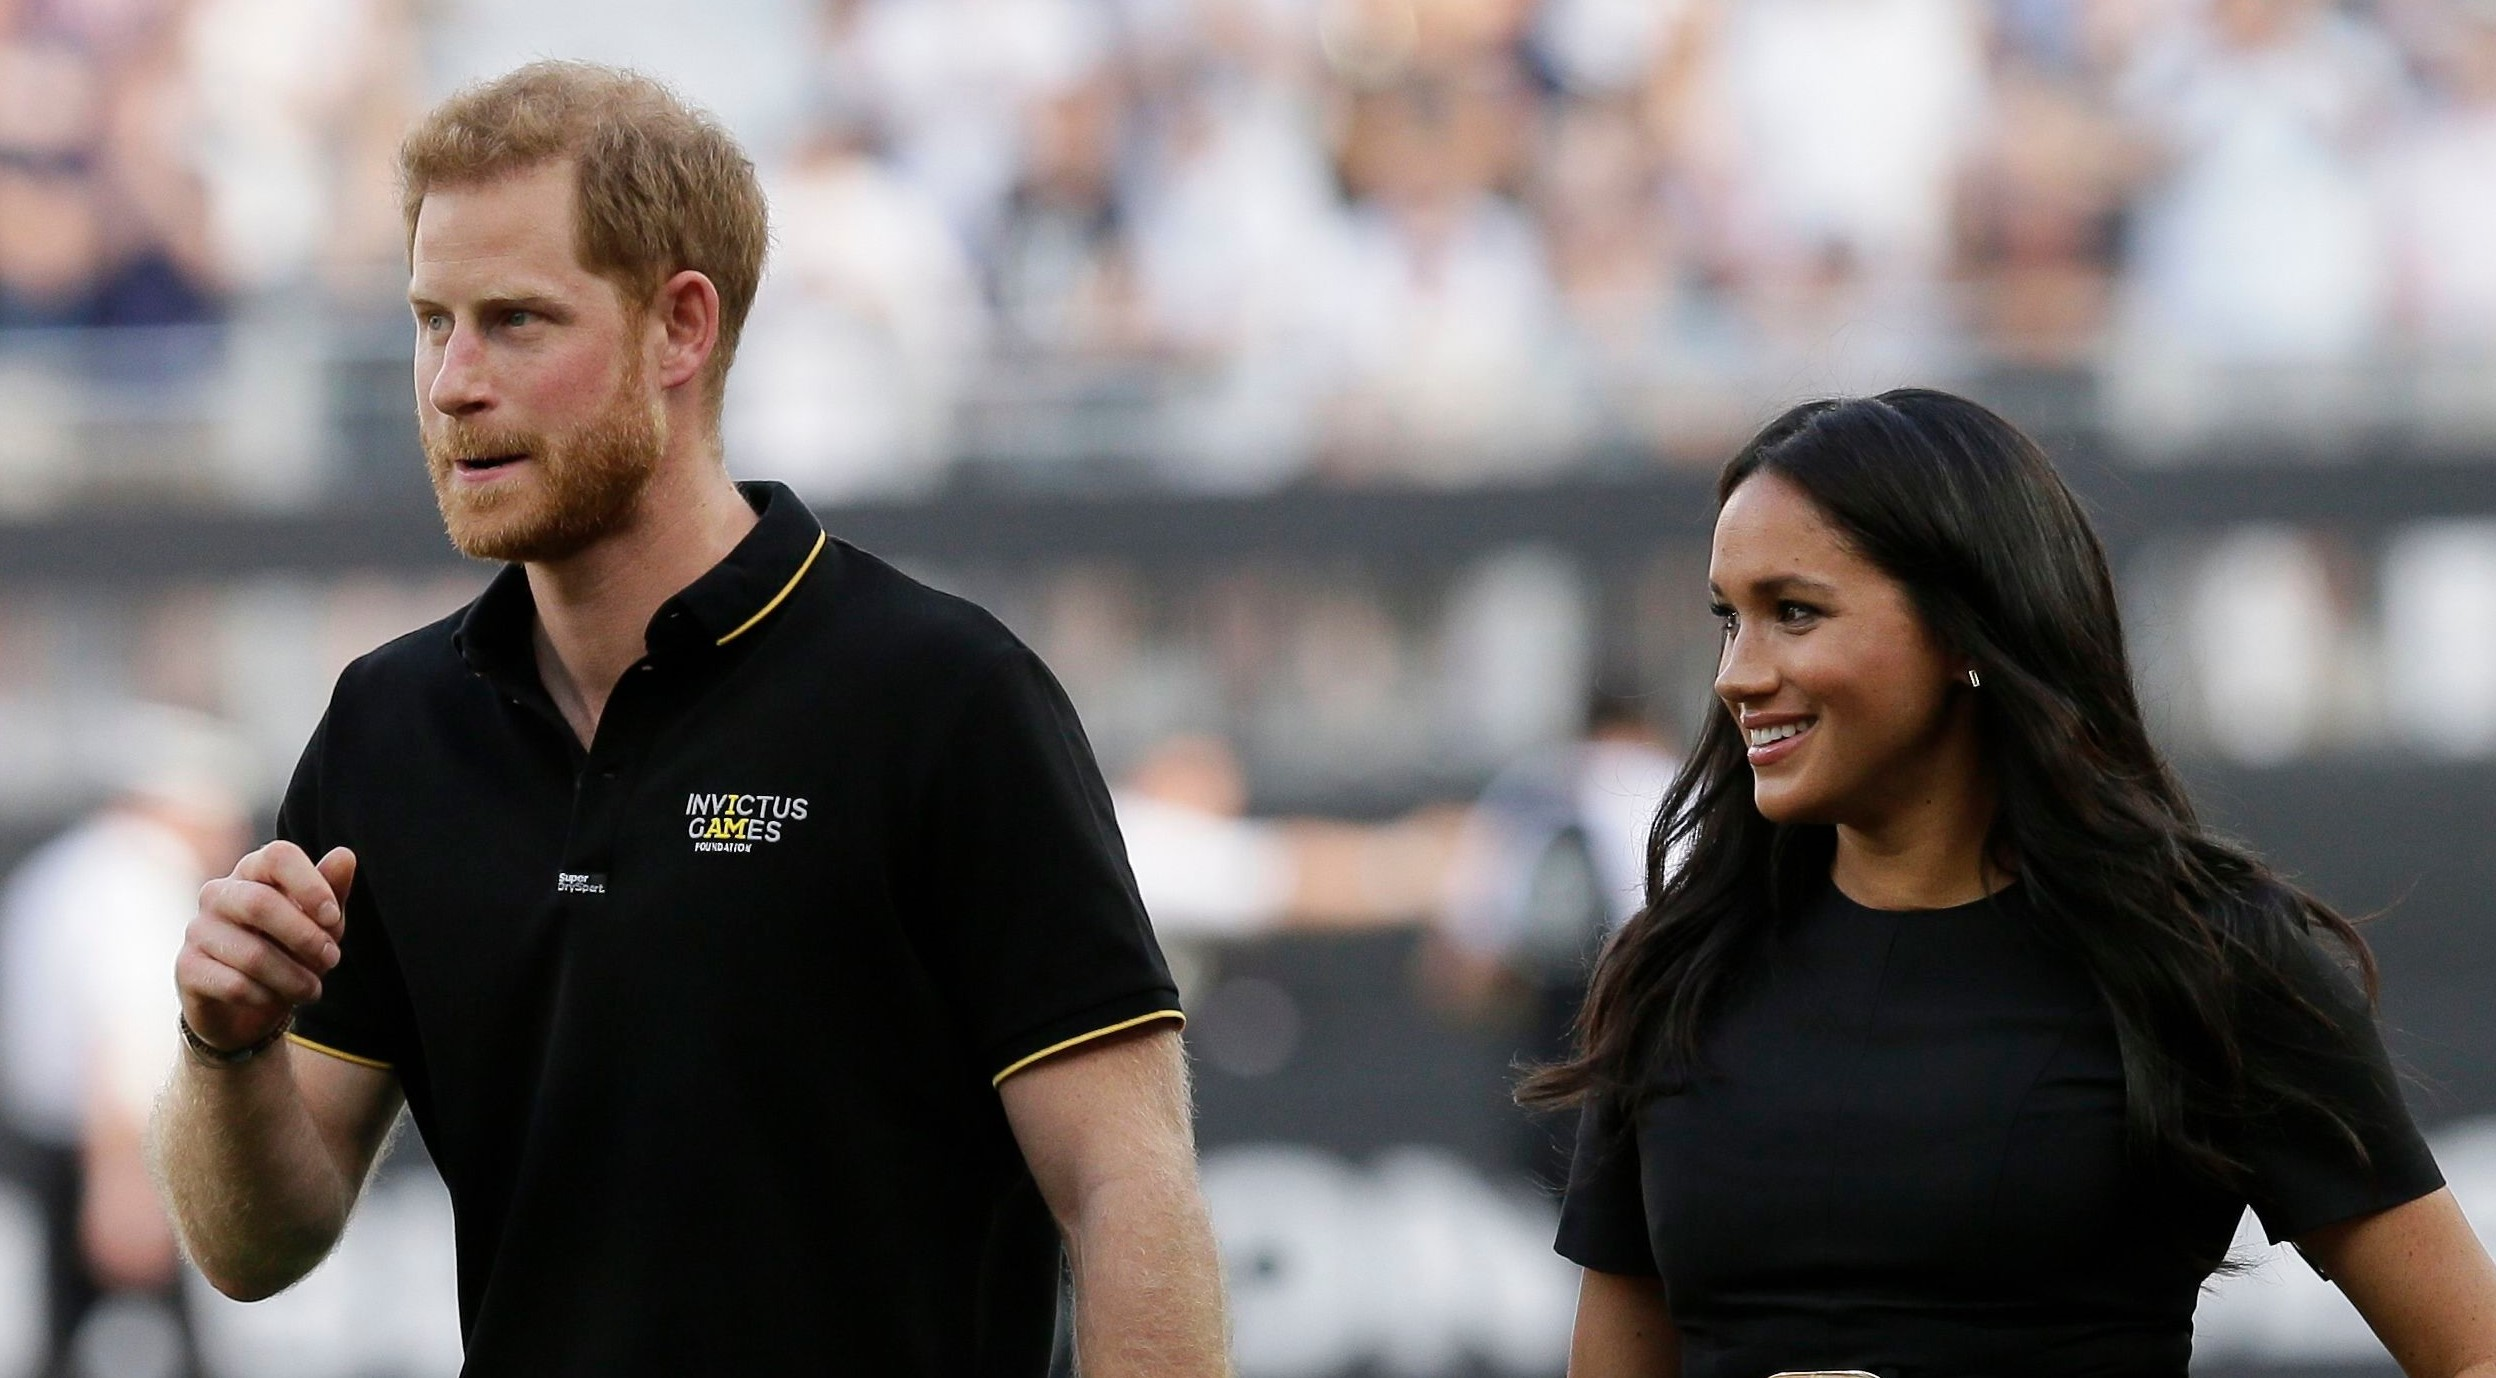 Glowing Meghan enjoys night out with Harry at baseball match